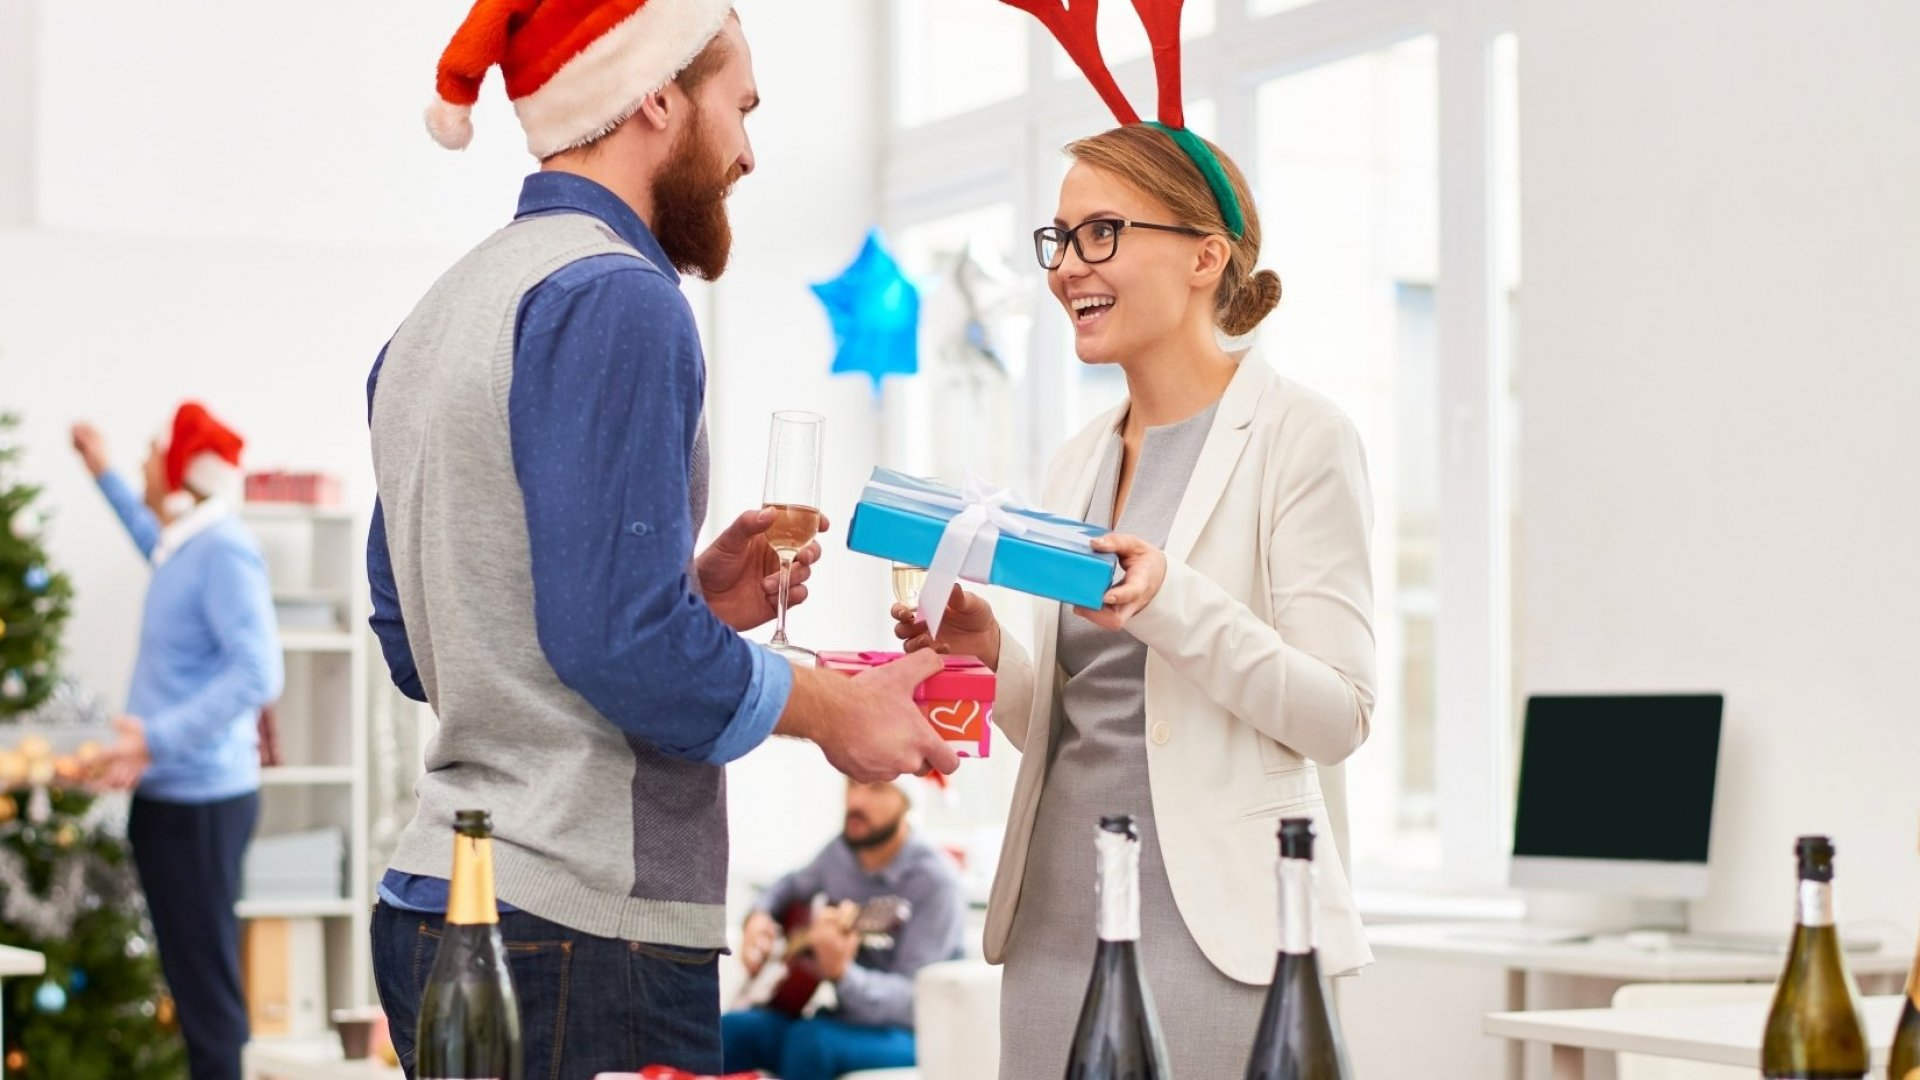 Consider This Before You Buy That Office Christmas Gift